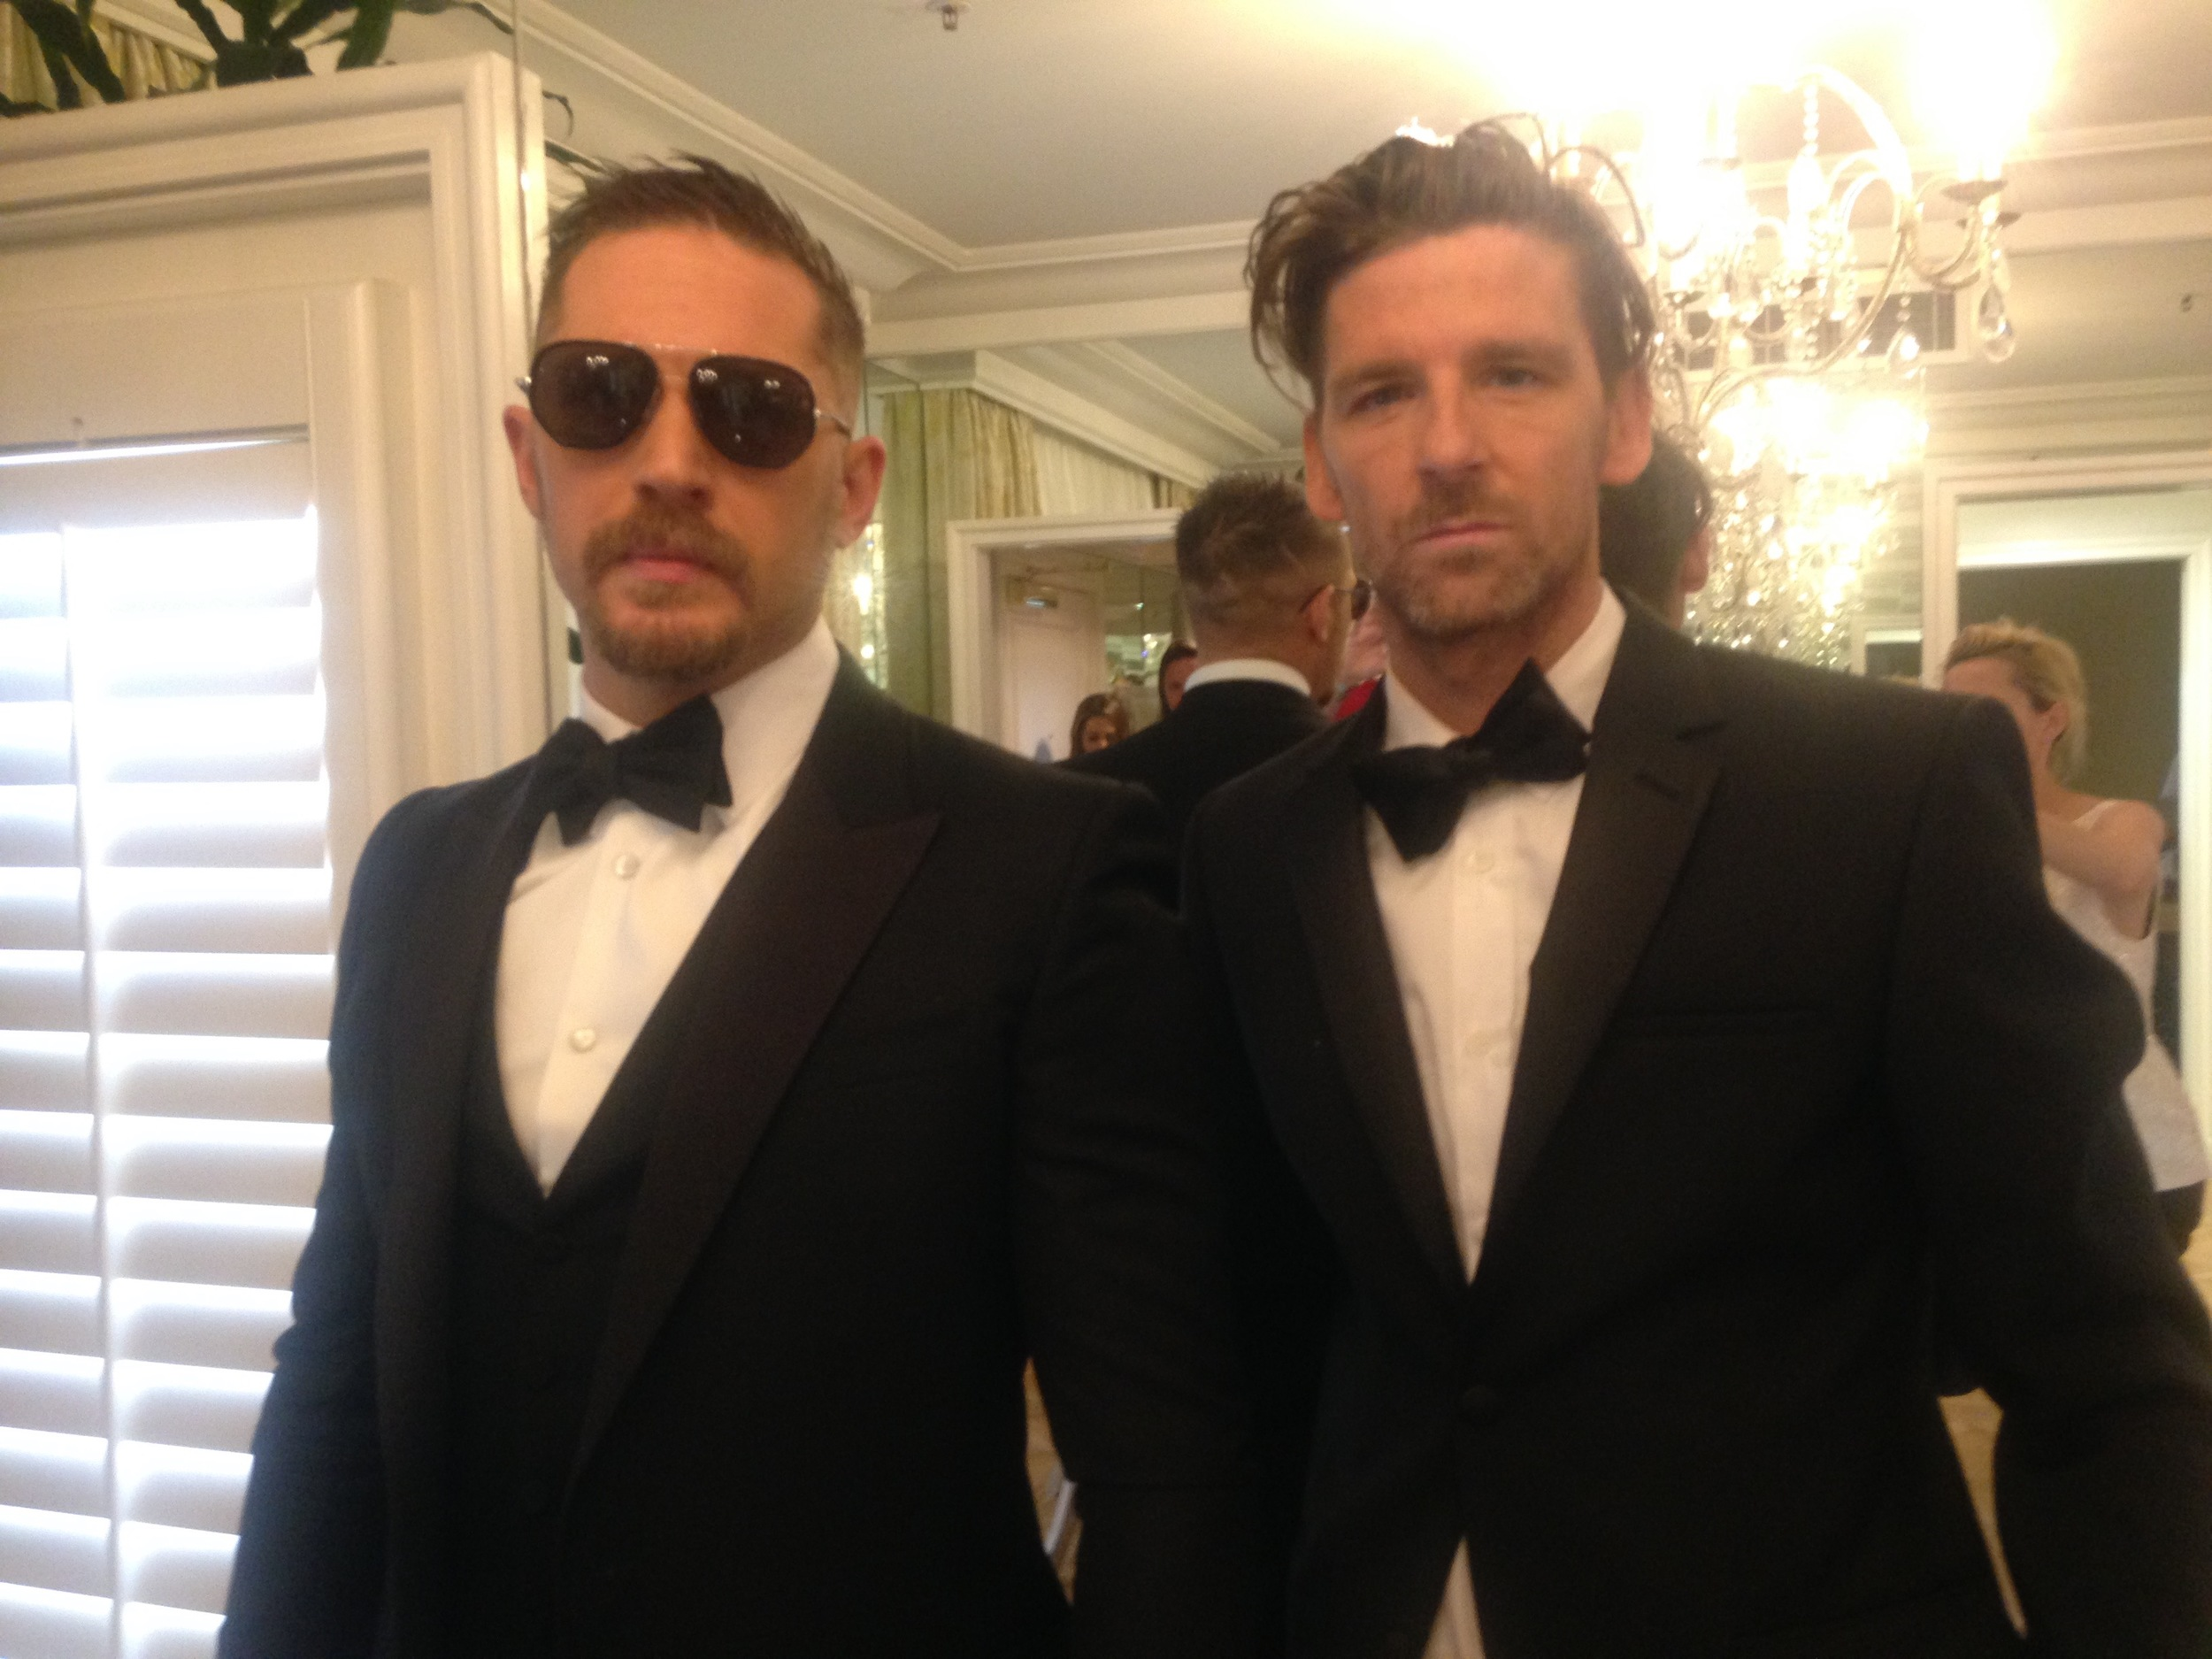 Tom Hardy in Gucci and Paul Anderson in Calvin Klein